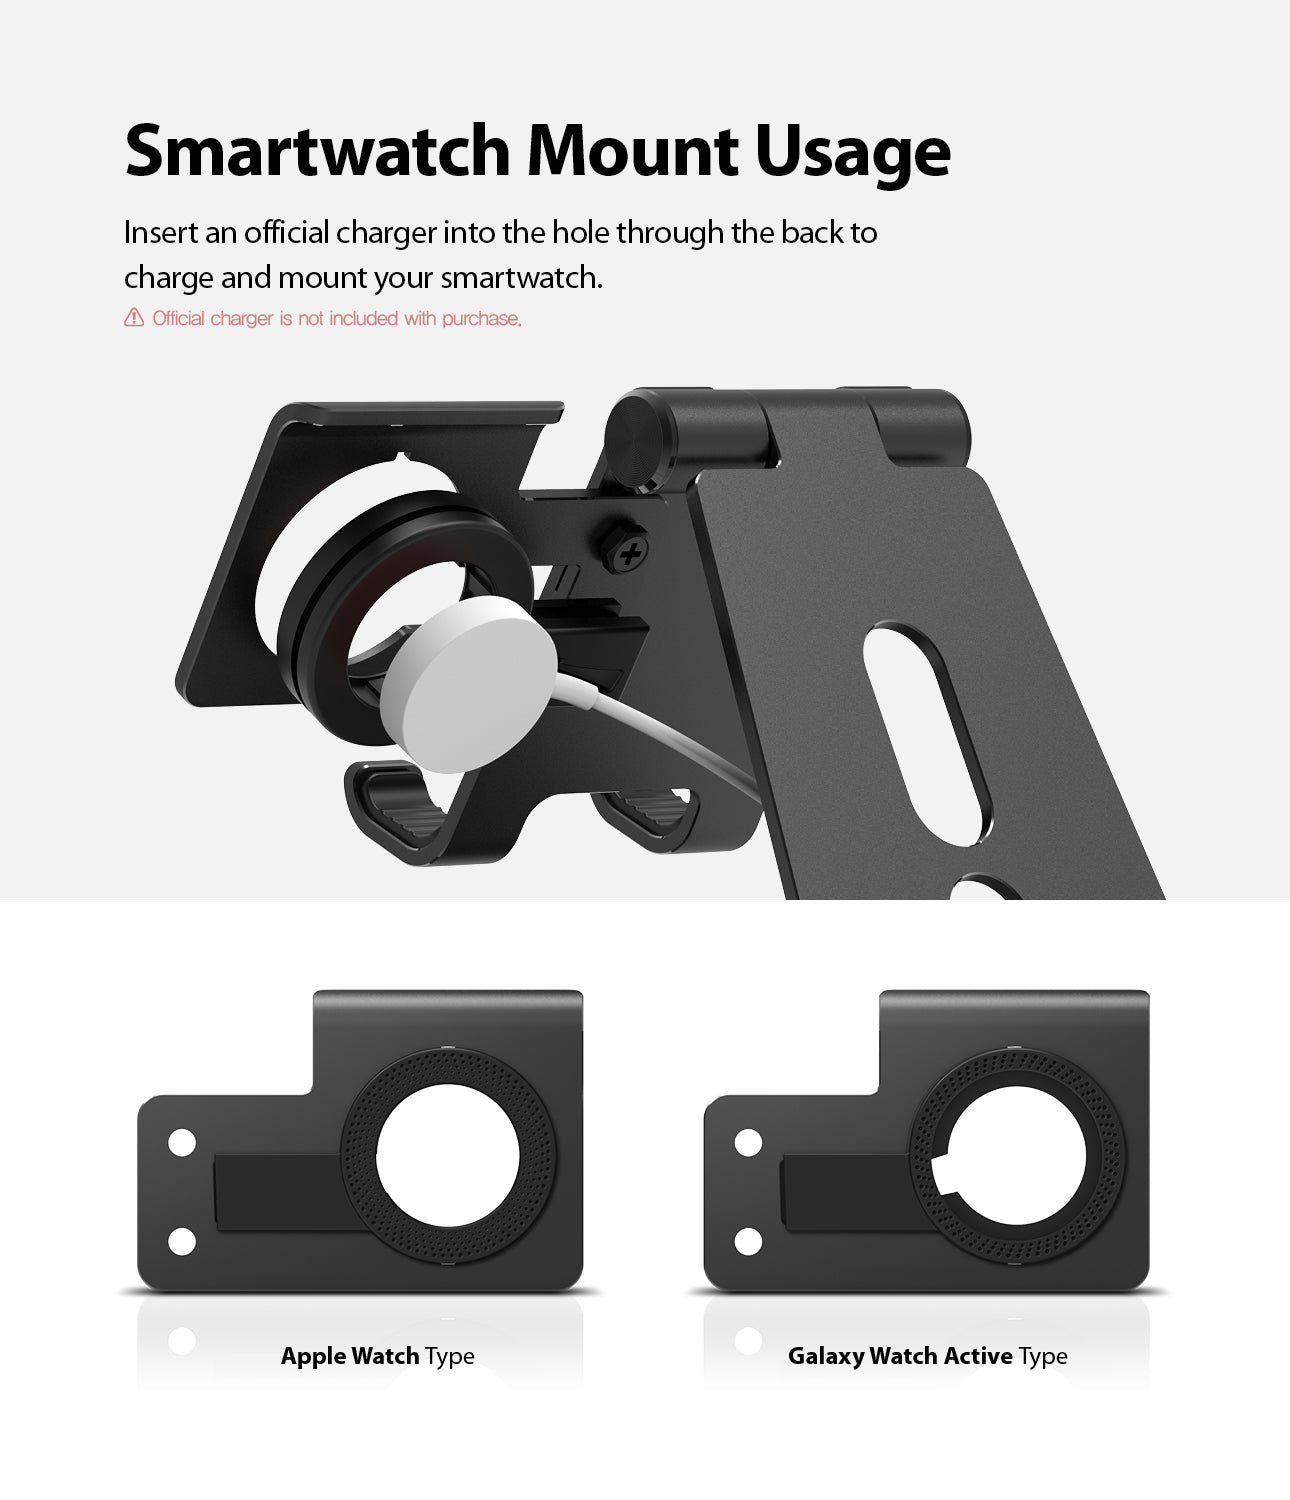 smartwatch mount usage